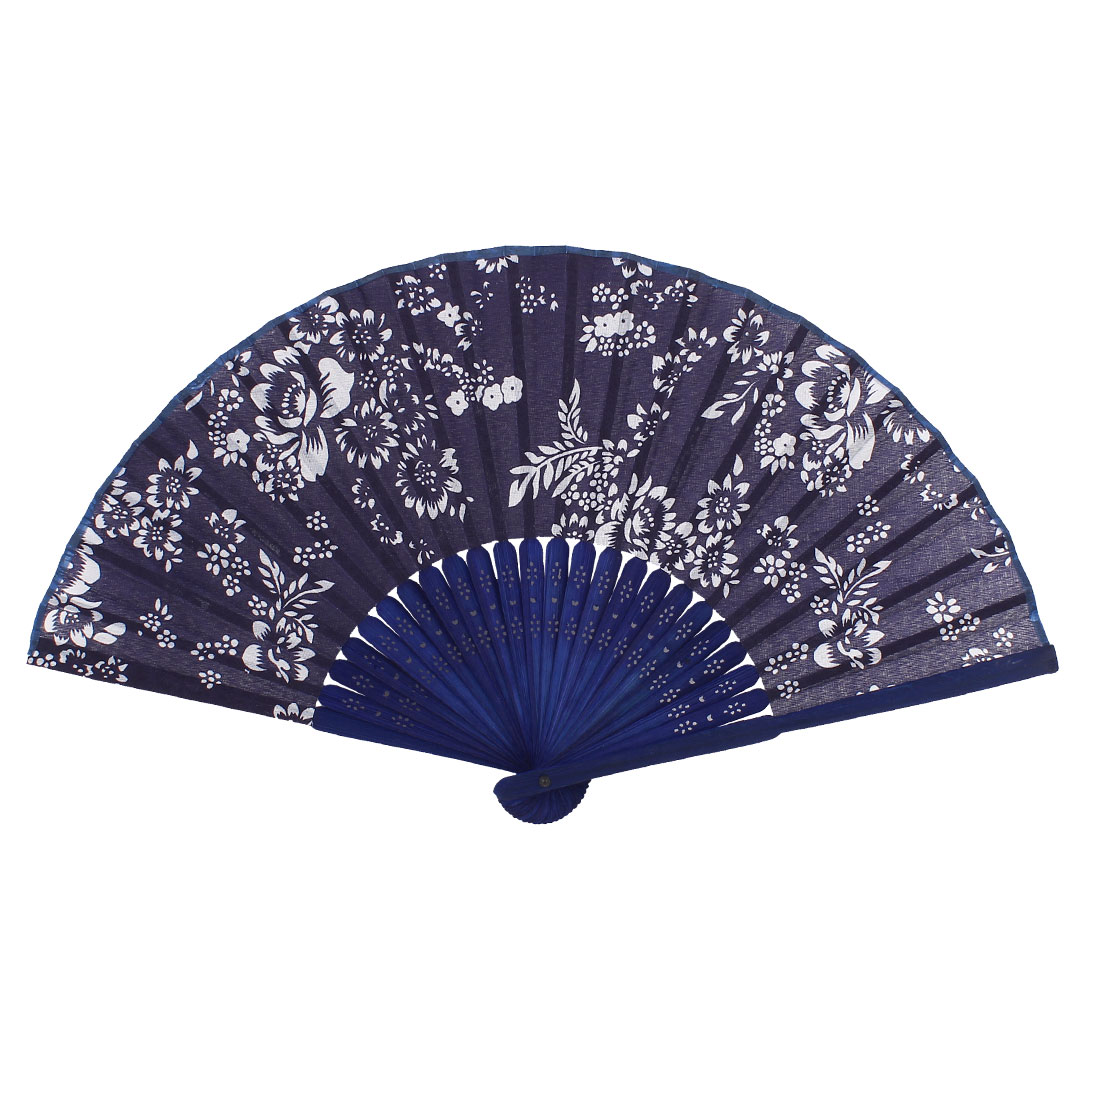 Bamboo Ribs Flowers Pattern Chinese Minority Fabric Cover Foldable Hand Fan